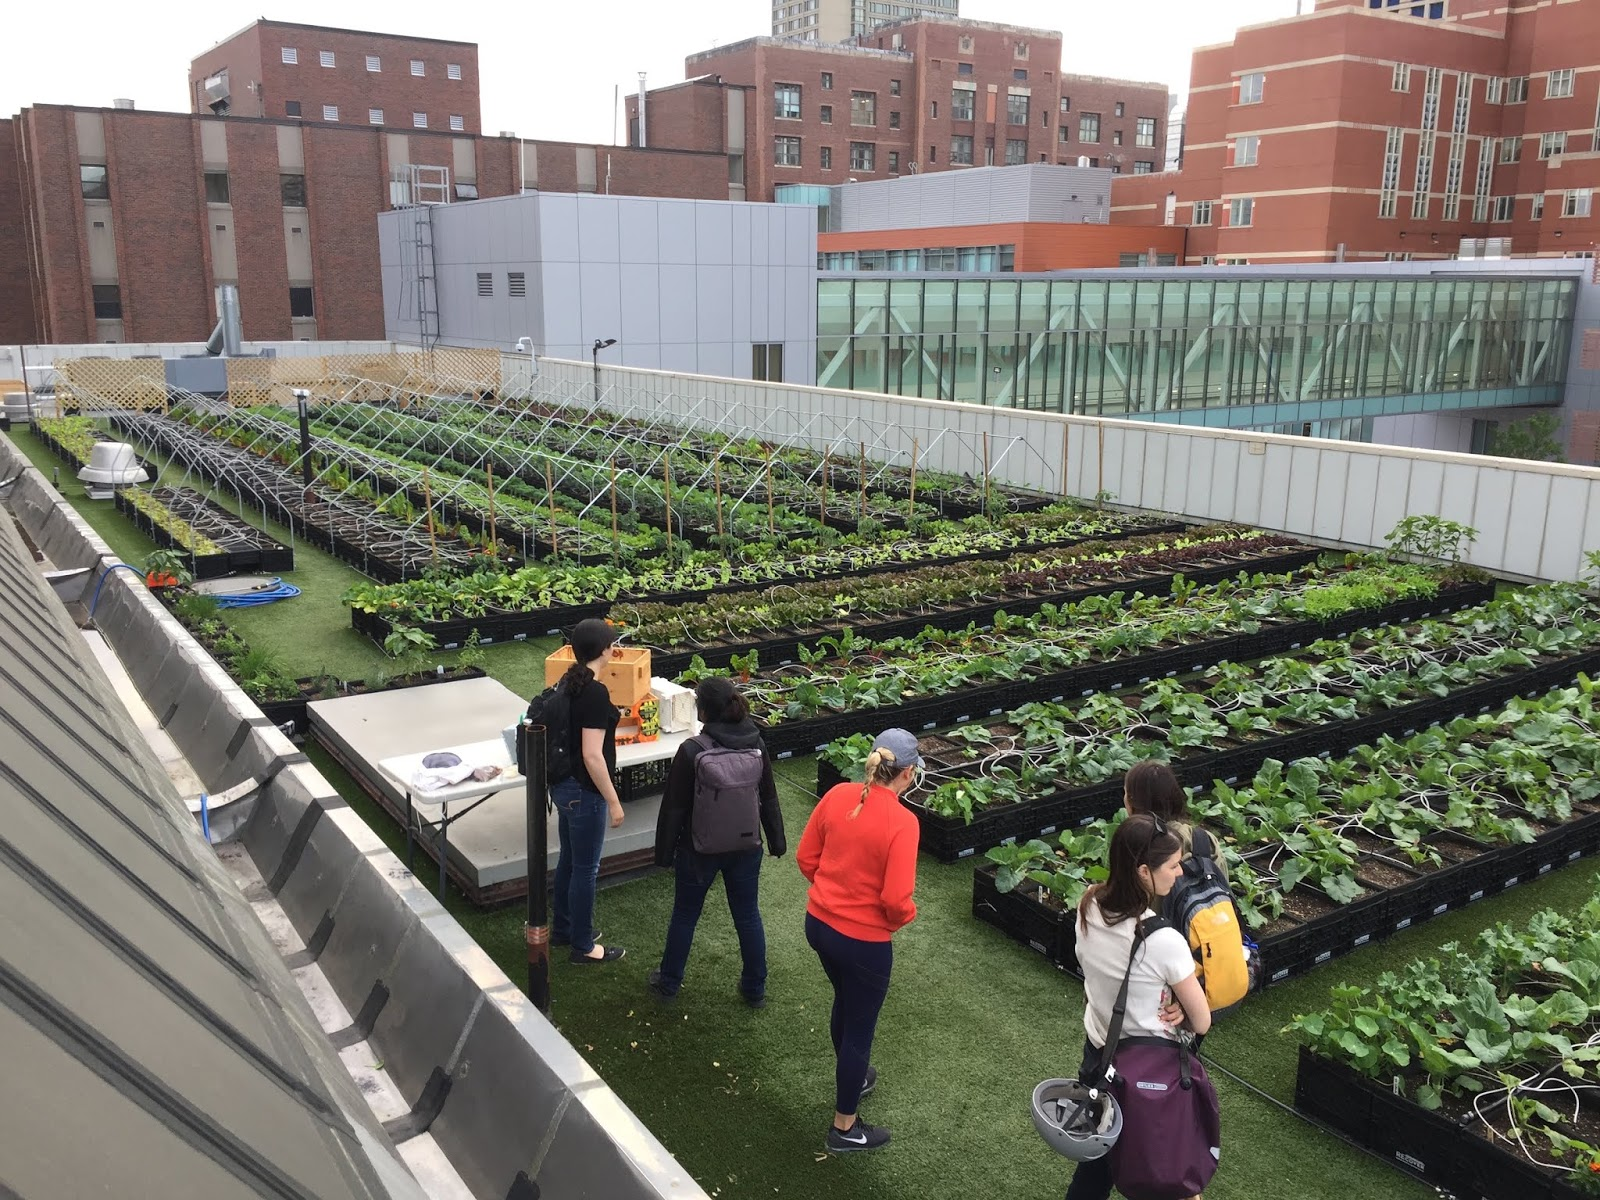 The Roof Top Garden At Boston Medical Center Serves Many Functions,  Including Providing Vegetables, Such As Tomatoes, Carrots, And Kale For  Their Cafeteria, ...